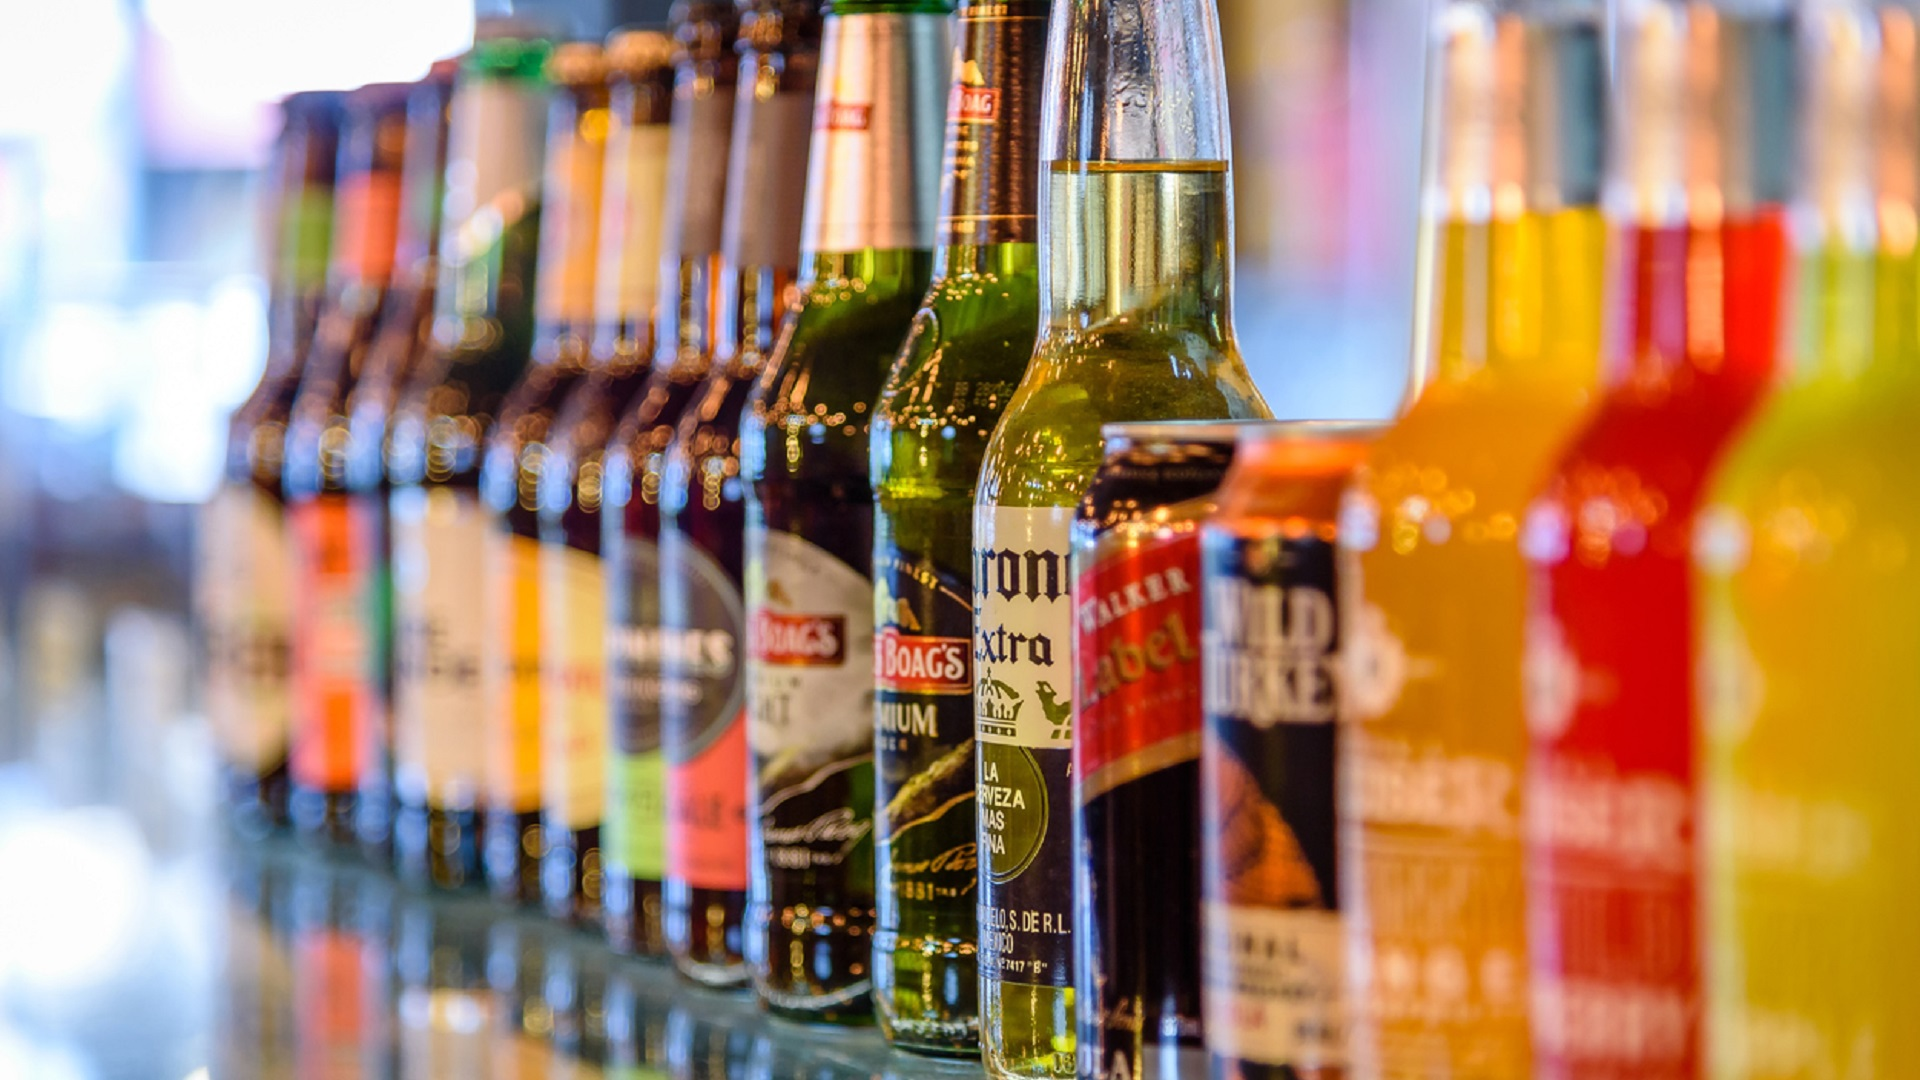 Lineup of beer bottles alcohol tax